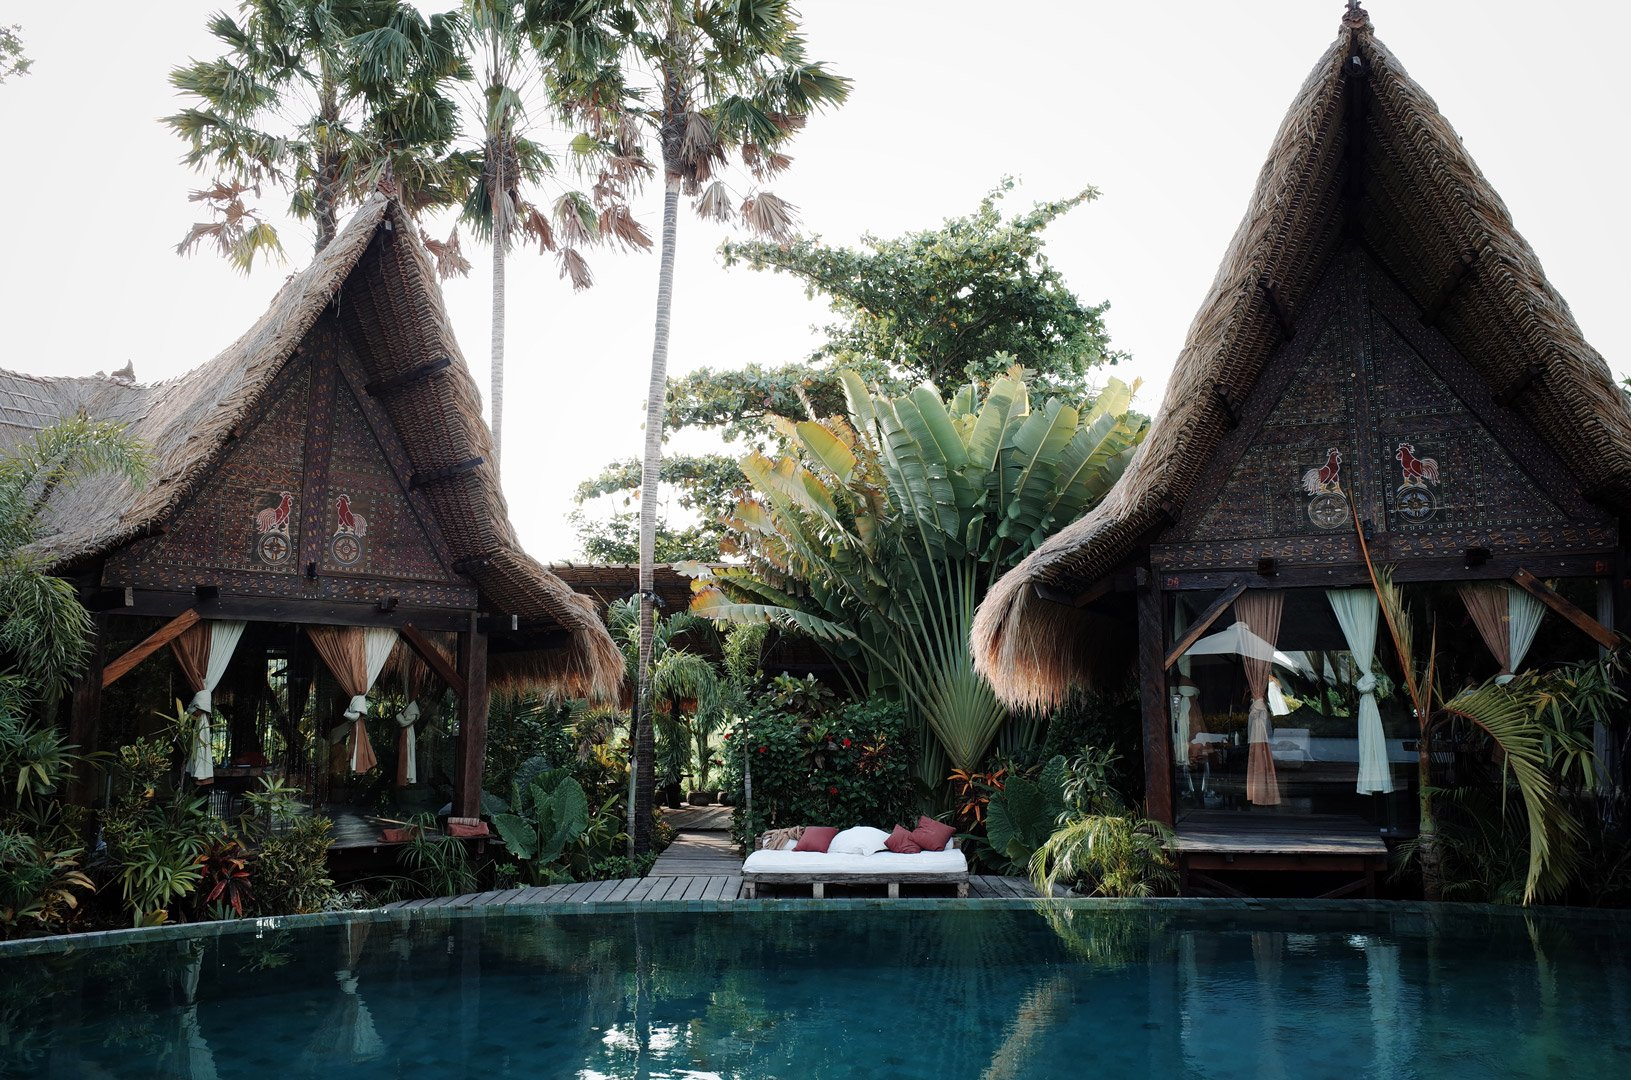 Own Villa poolside eco design bedrooms made of recycled iron wood and facing swimming pool surrounded by tropical Bali nature